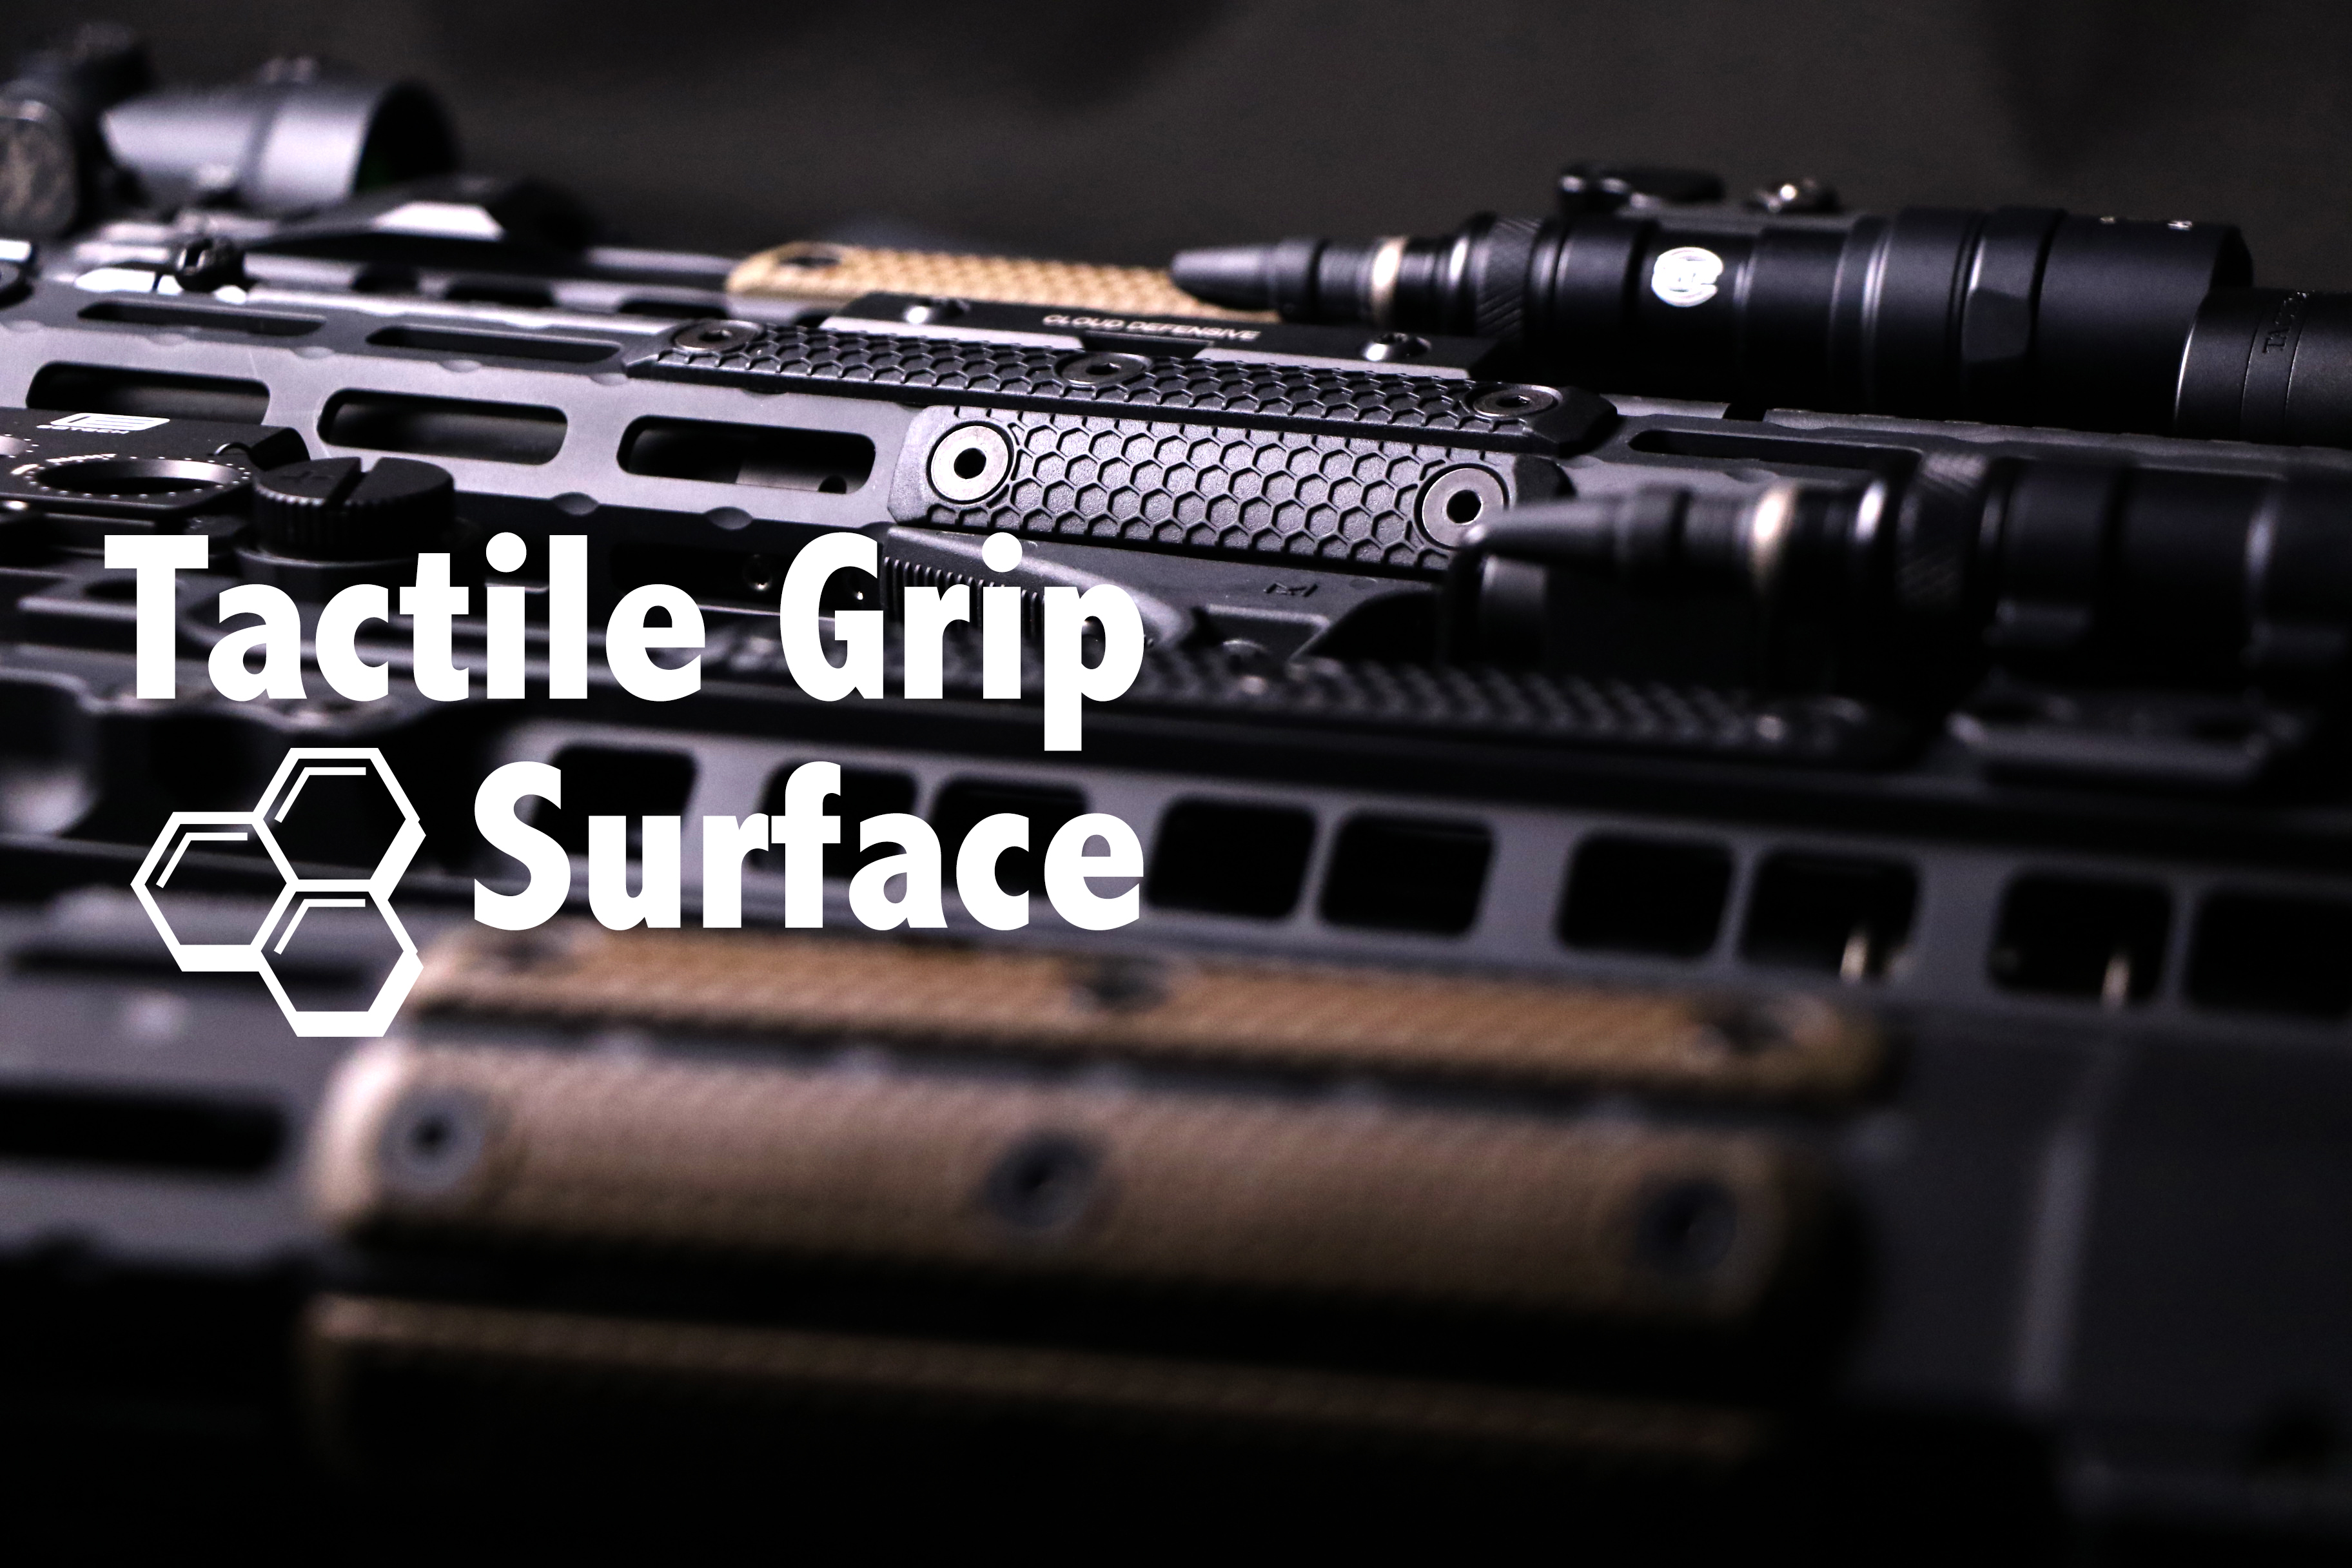 tactile grip srface